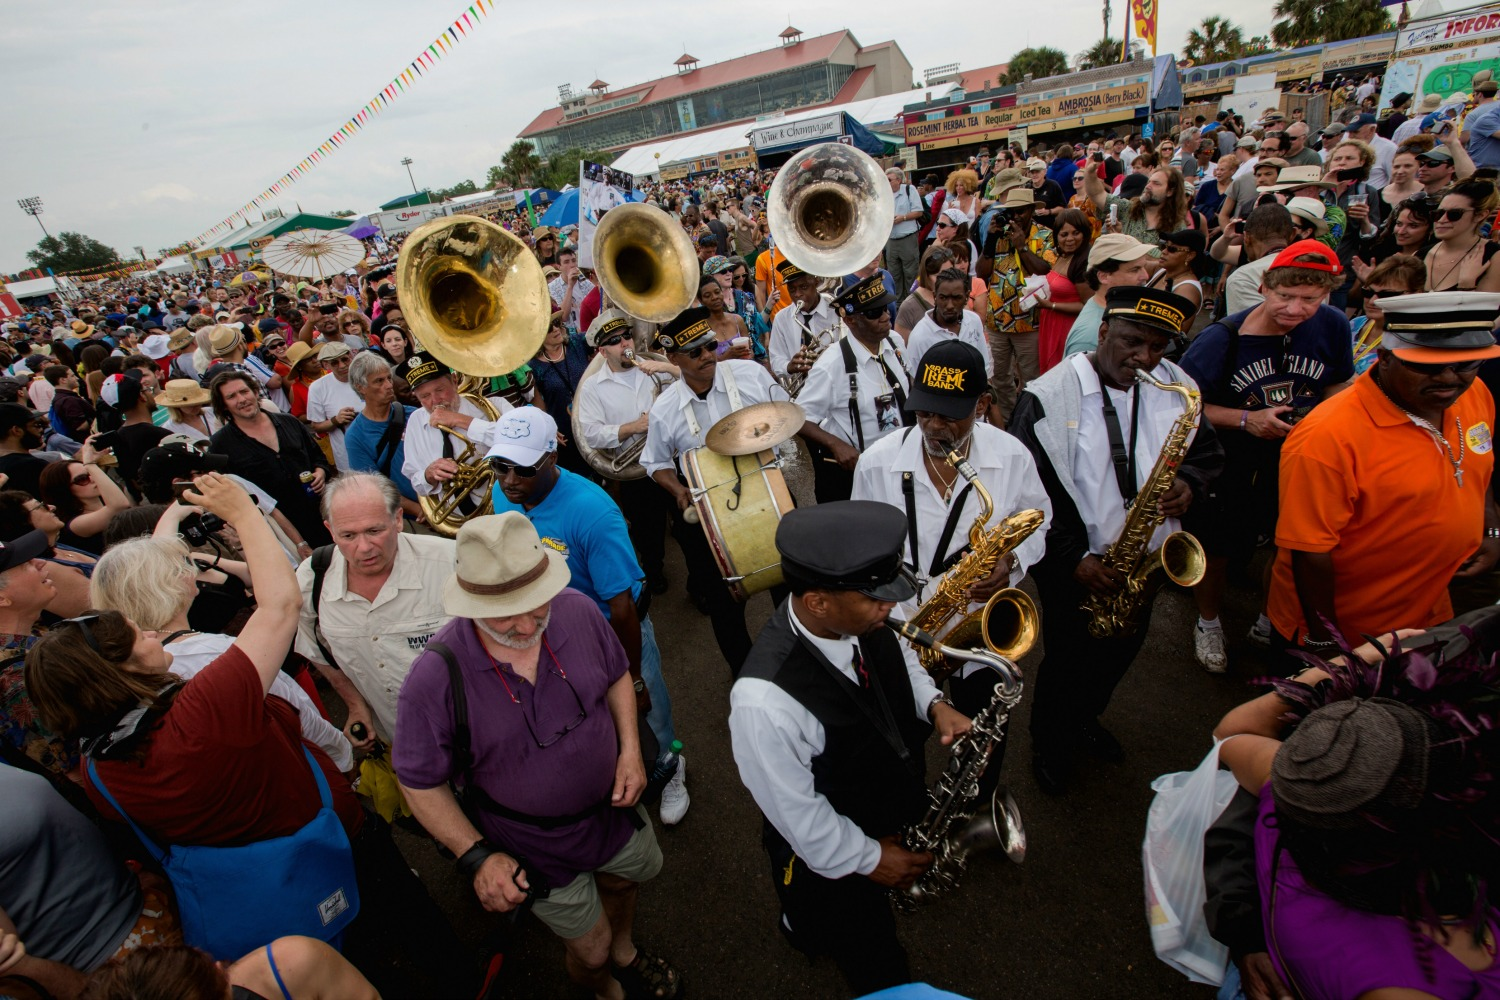 A jazz funeral for musician Uncle Lionel Batiste with the Treme Brass Band and friends during the 2013 Jazz Fest. (Photo courtesy of New Orleans Jazz & Heritage Festival presented by Shell)